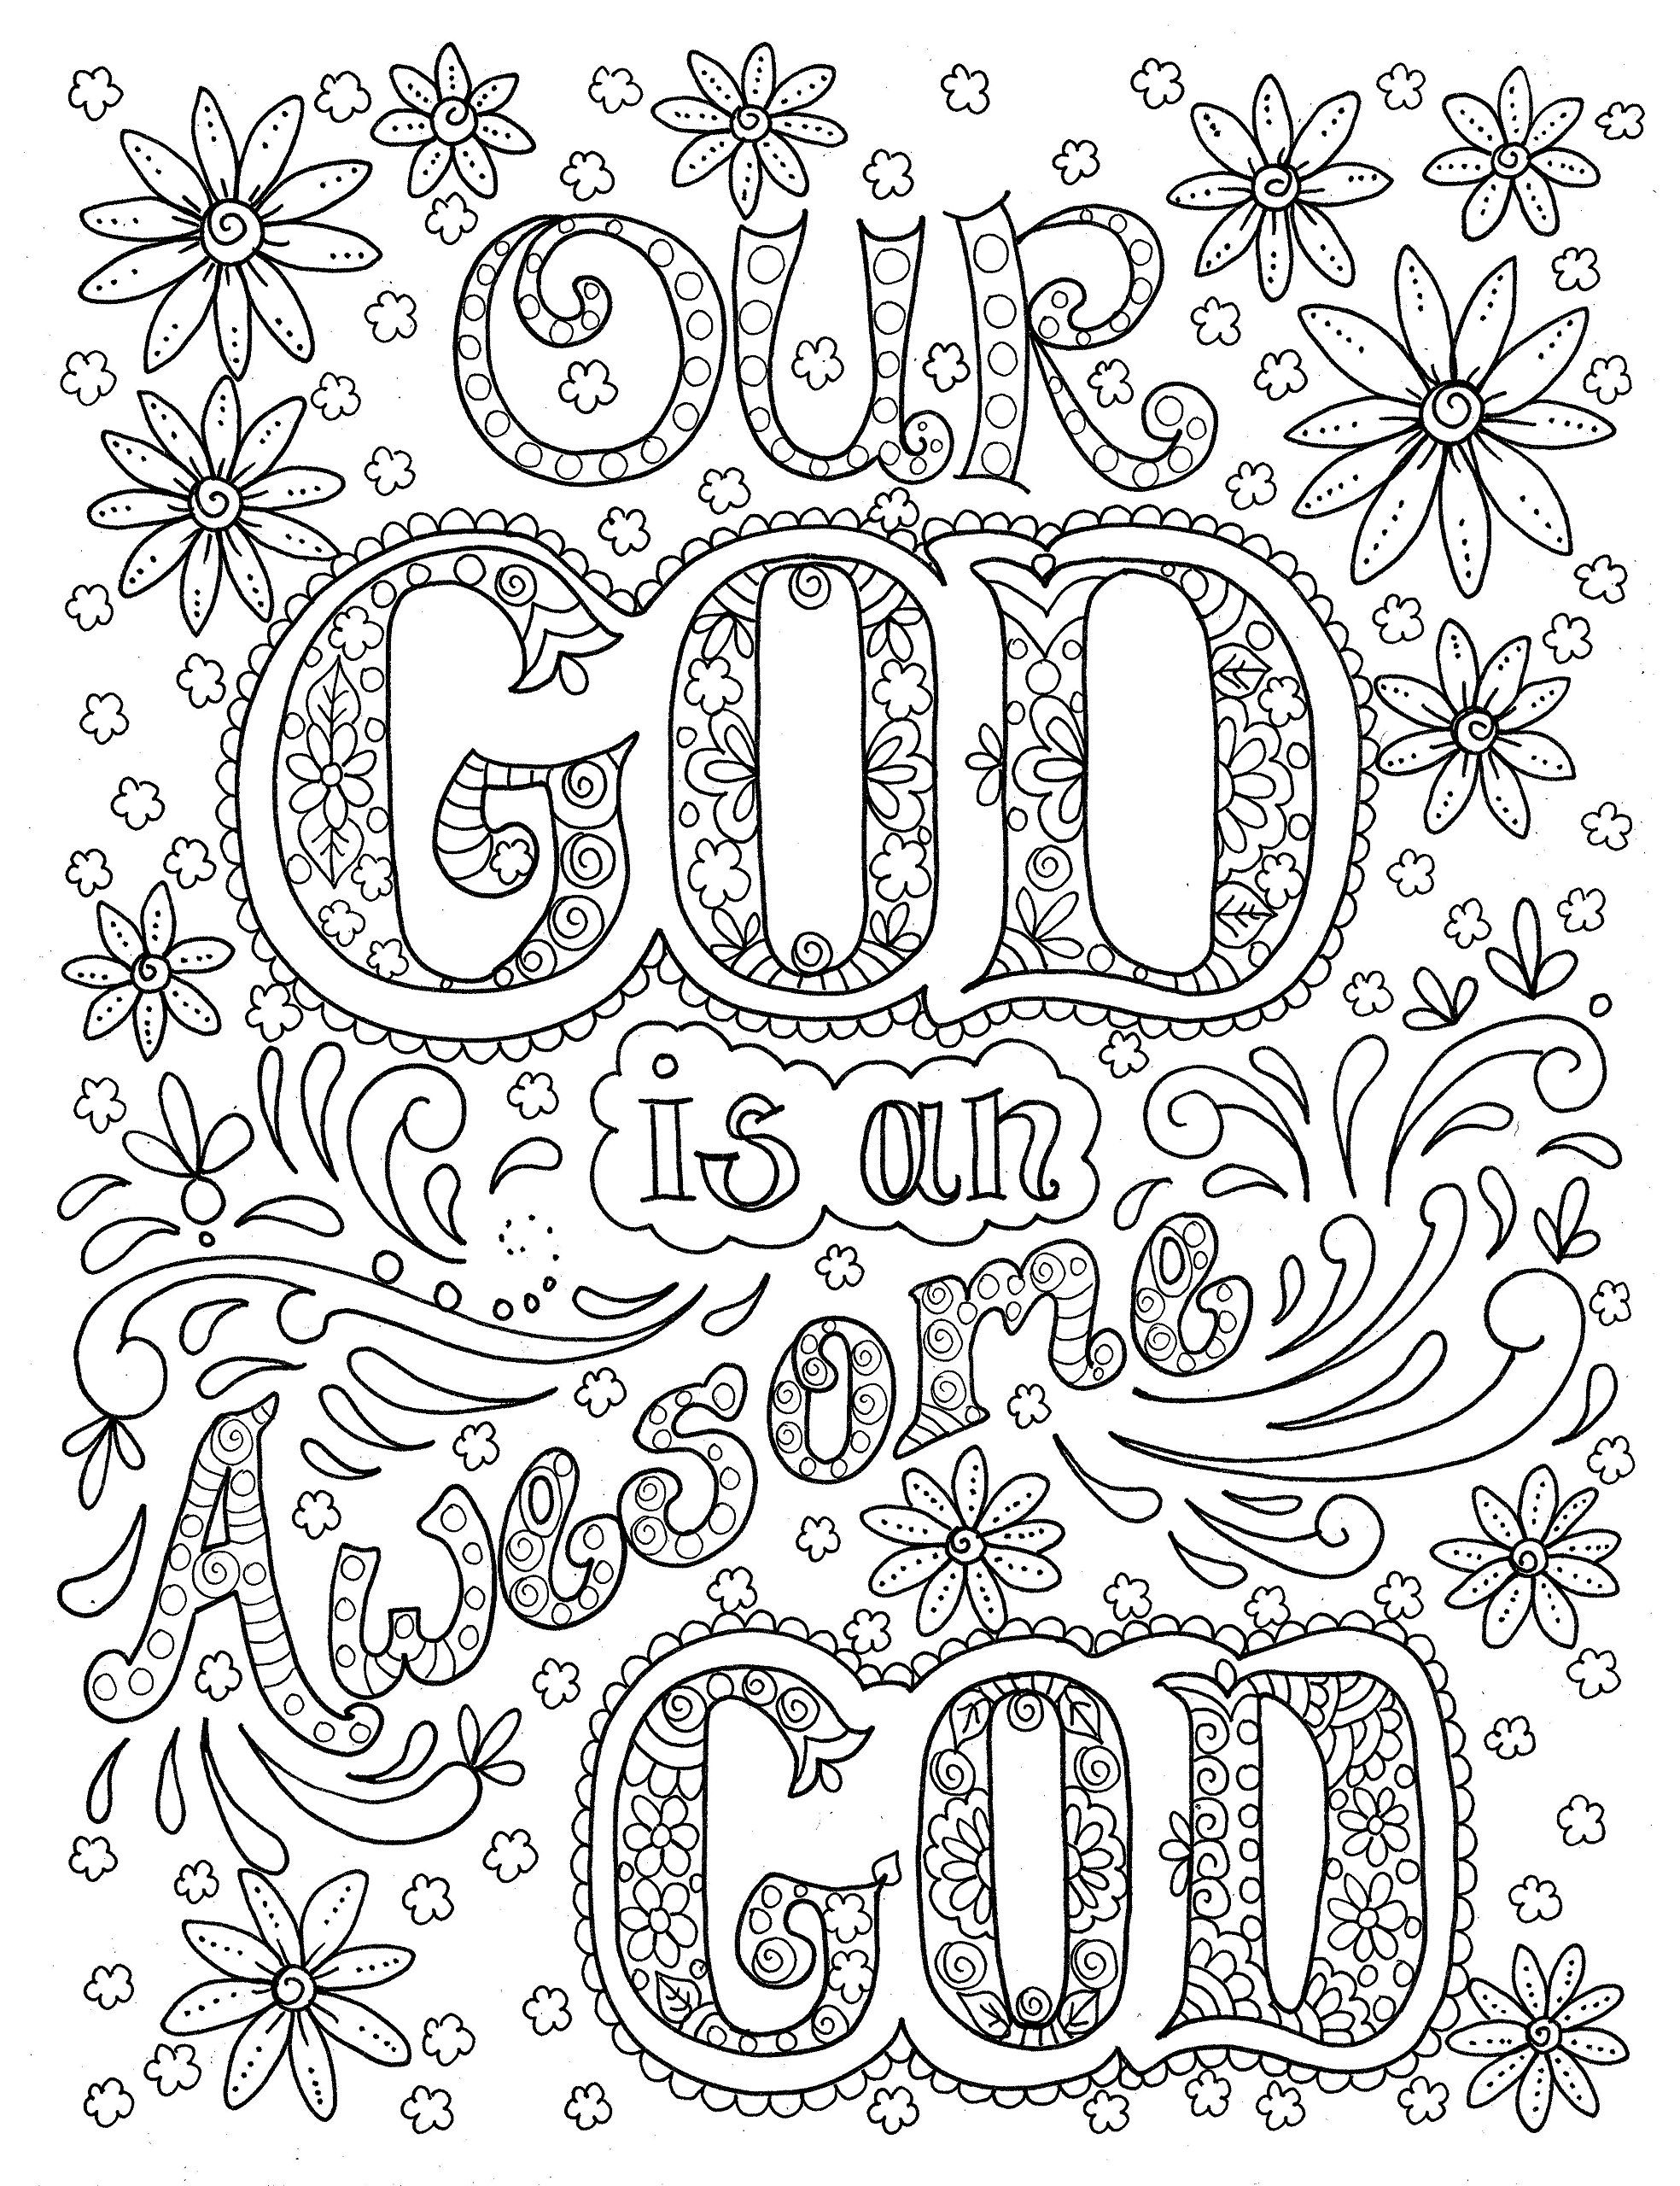 Praise and Worship Coloring Pages Gallery 19i - Free Download